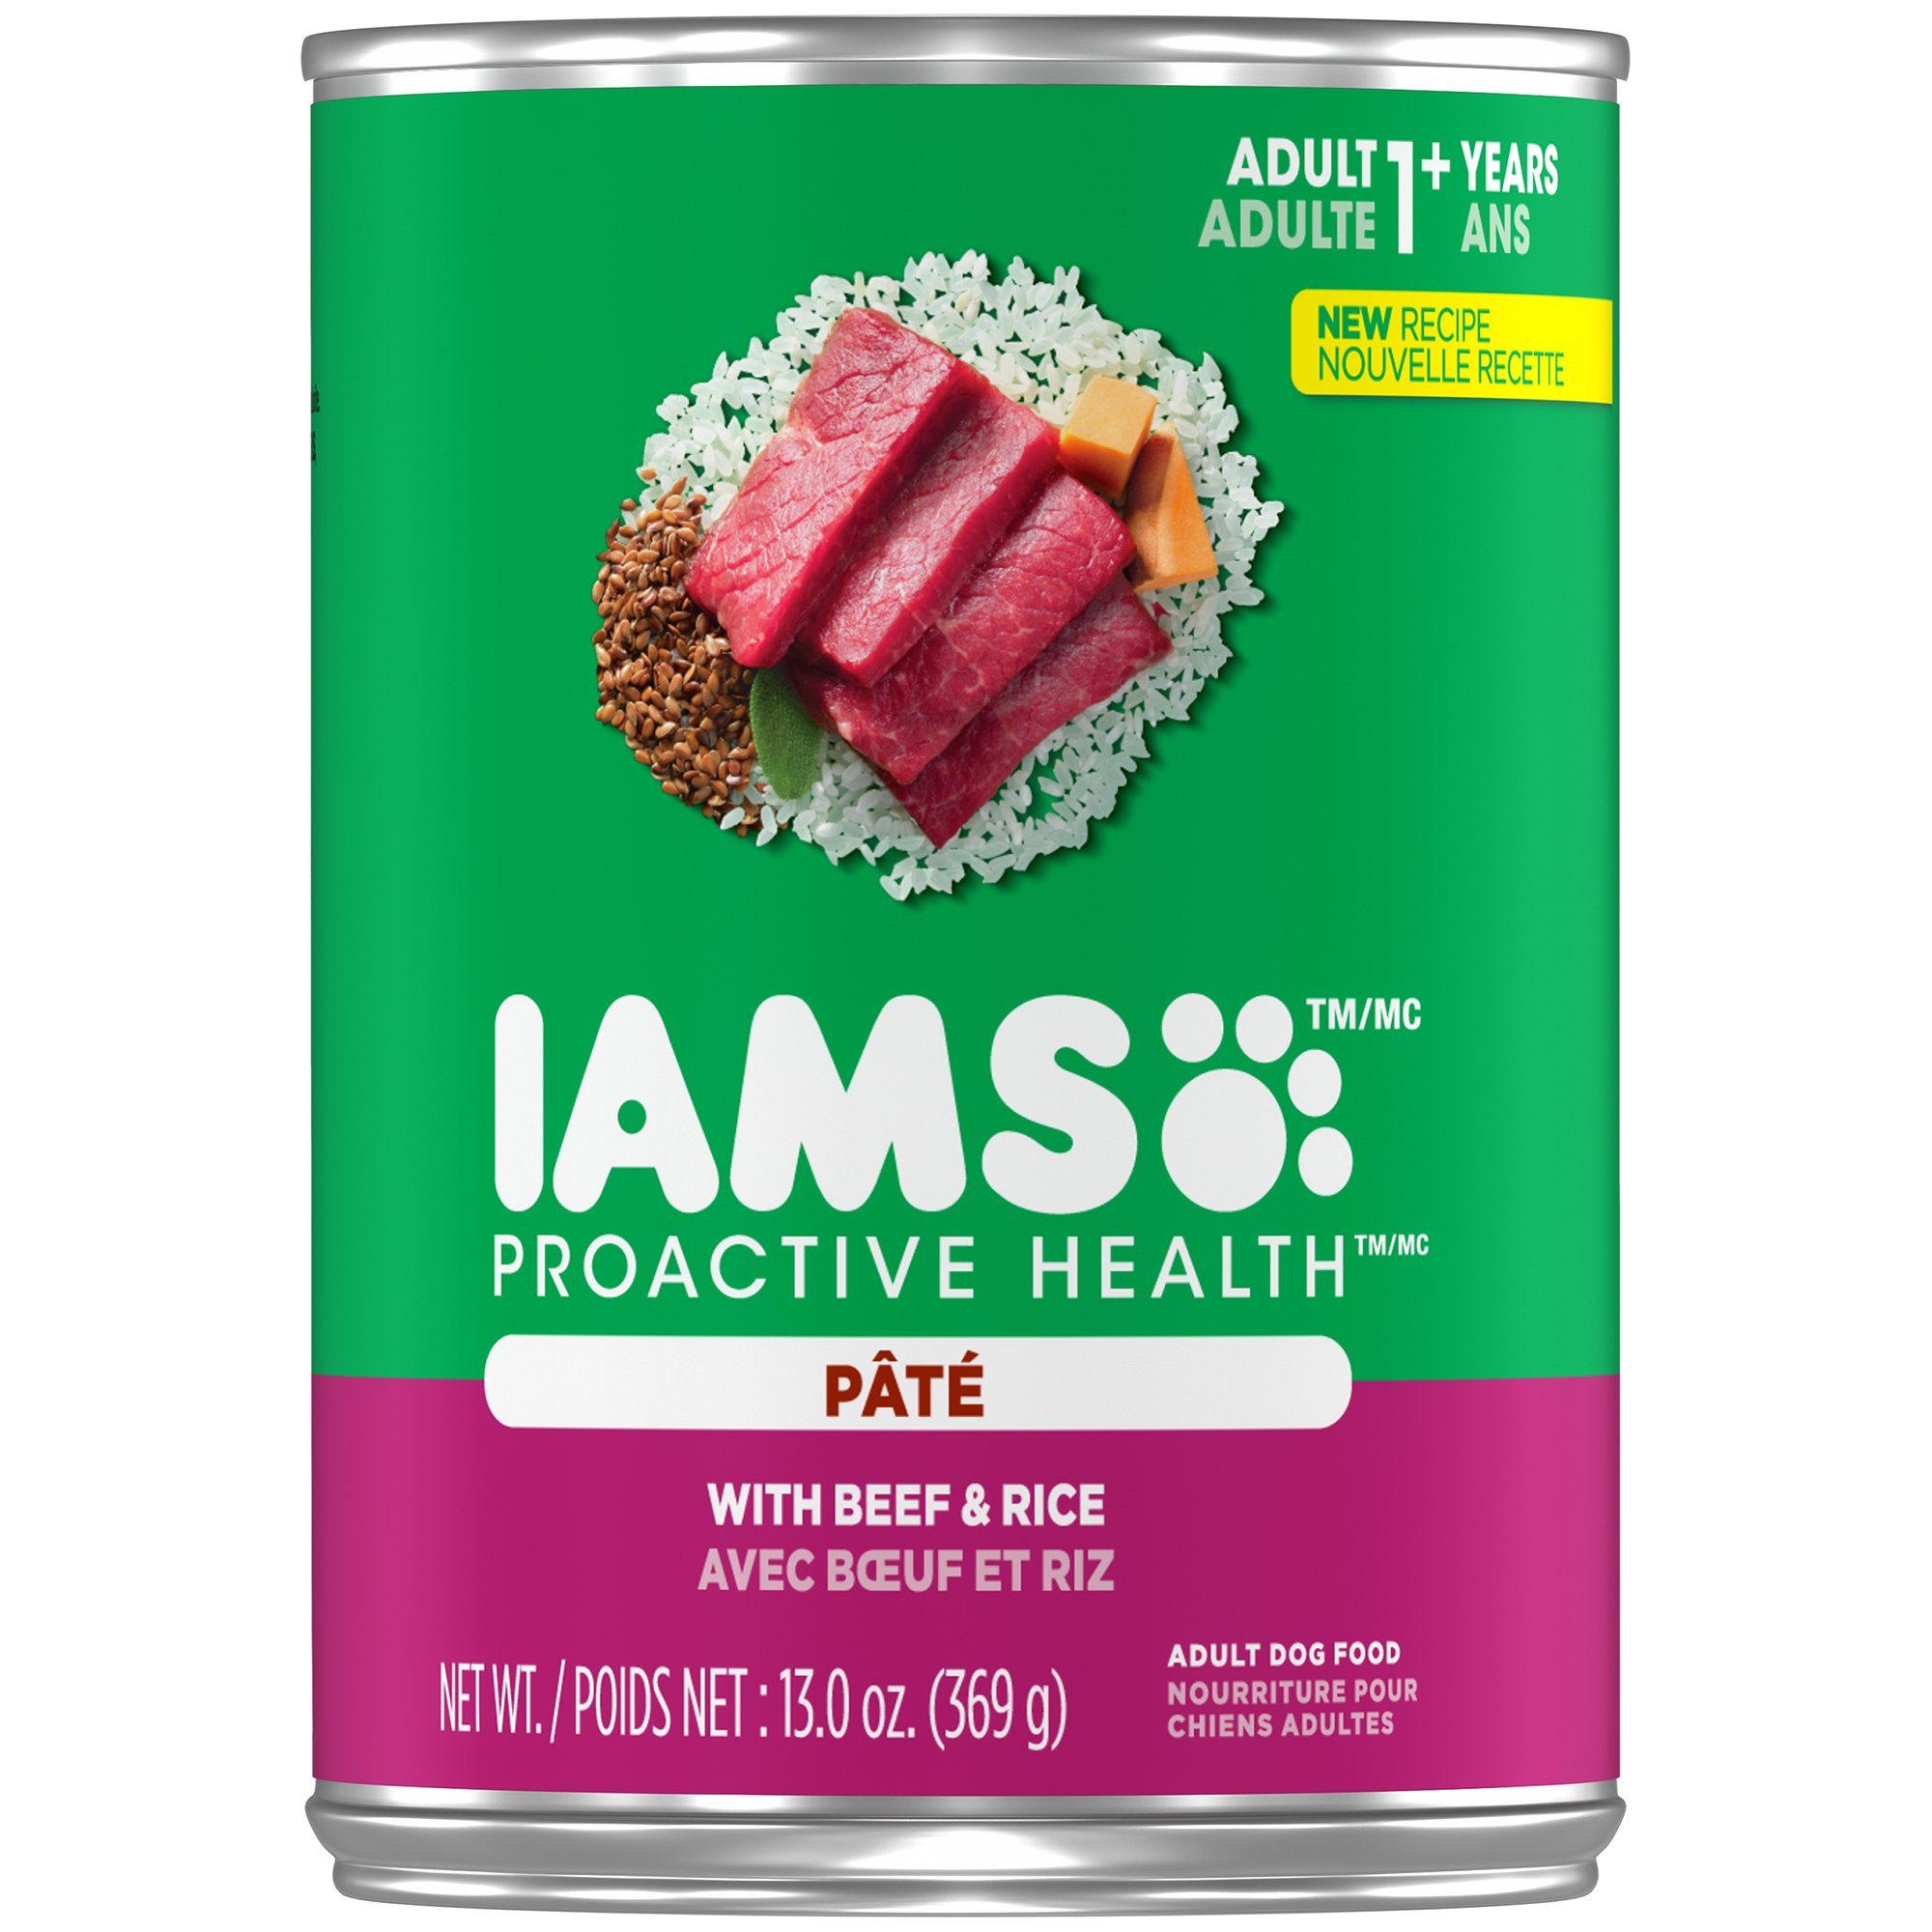 Iams Proactive Health Adult With Beef And Rice Pate Wet Dog Food 13.0 Ounces (Pack Of 12) by Iams